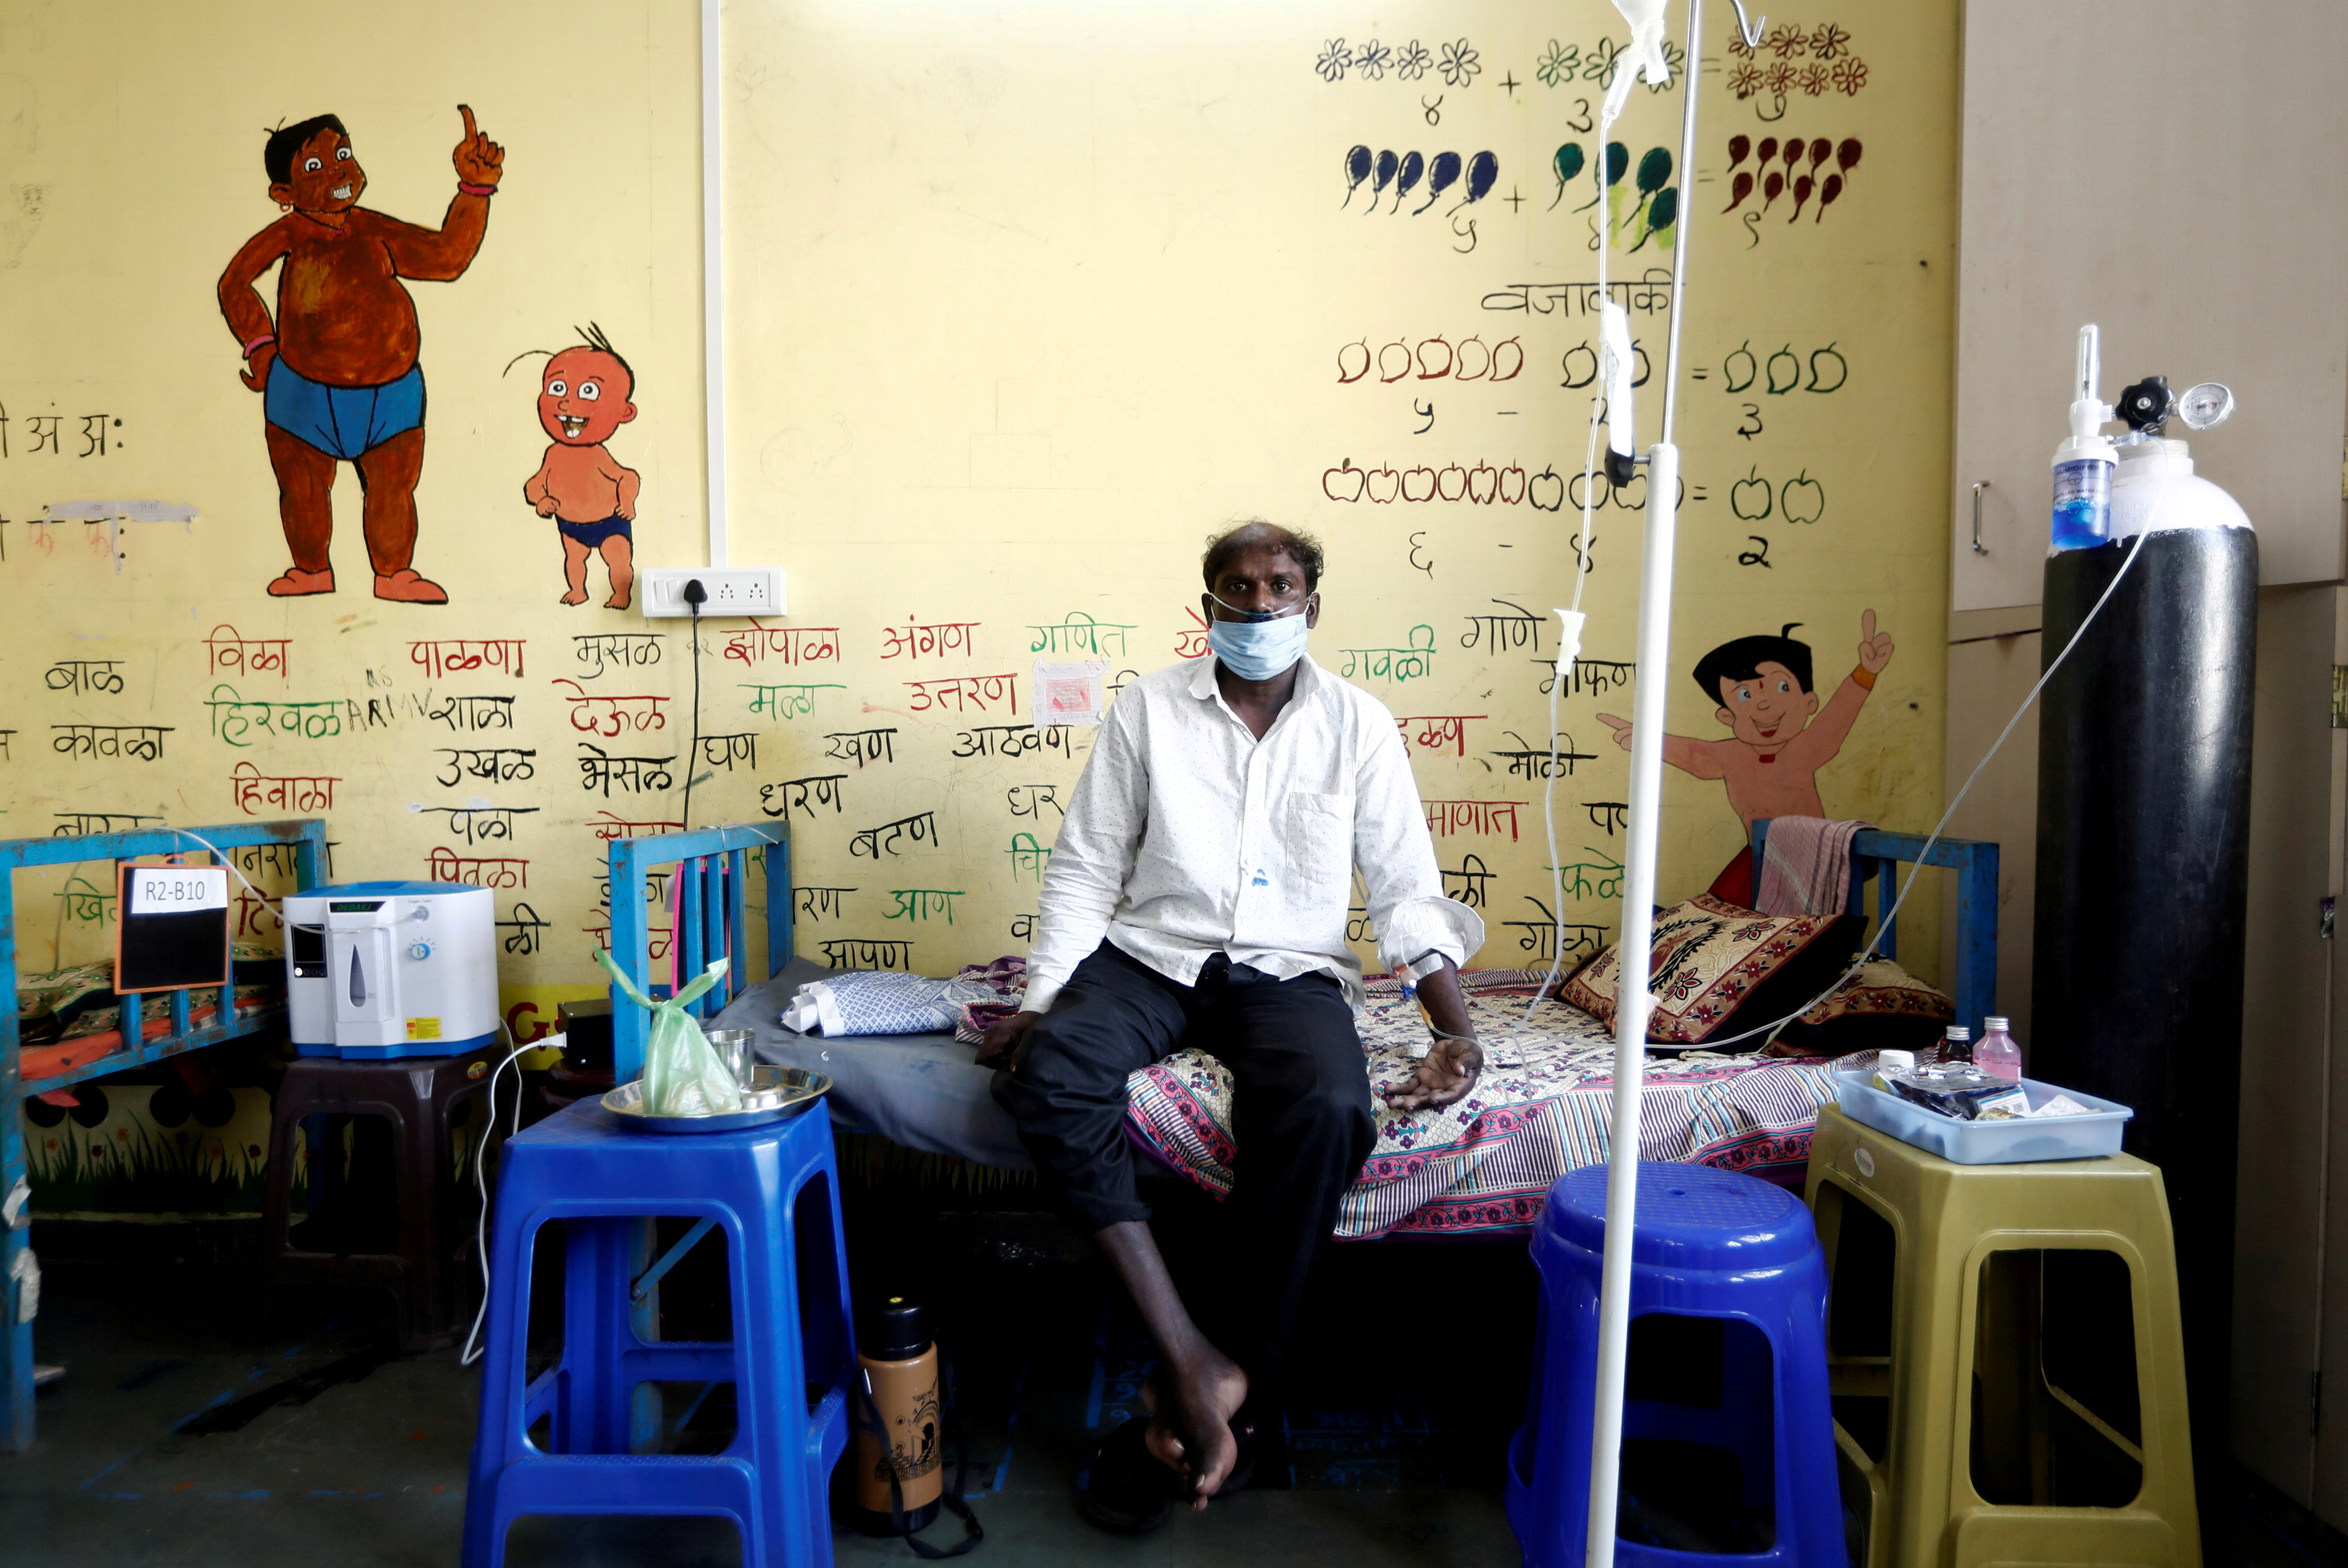 A man suffering from coronavirus disease (COVID-19) receives oxygen support as he sits inside the classroom of a school turned into a COVID-19 care facility on the outskirts of Mumbai, India, May 24, 2021. REUTERS/Francis Mascarenhas